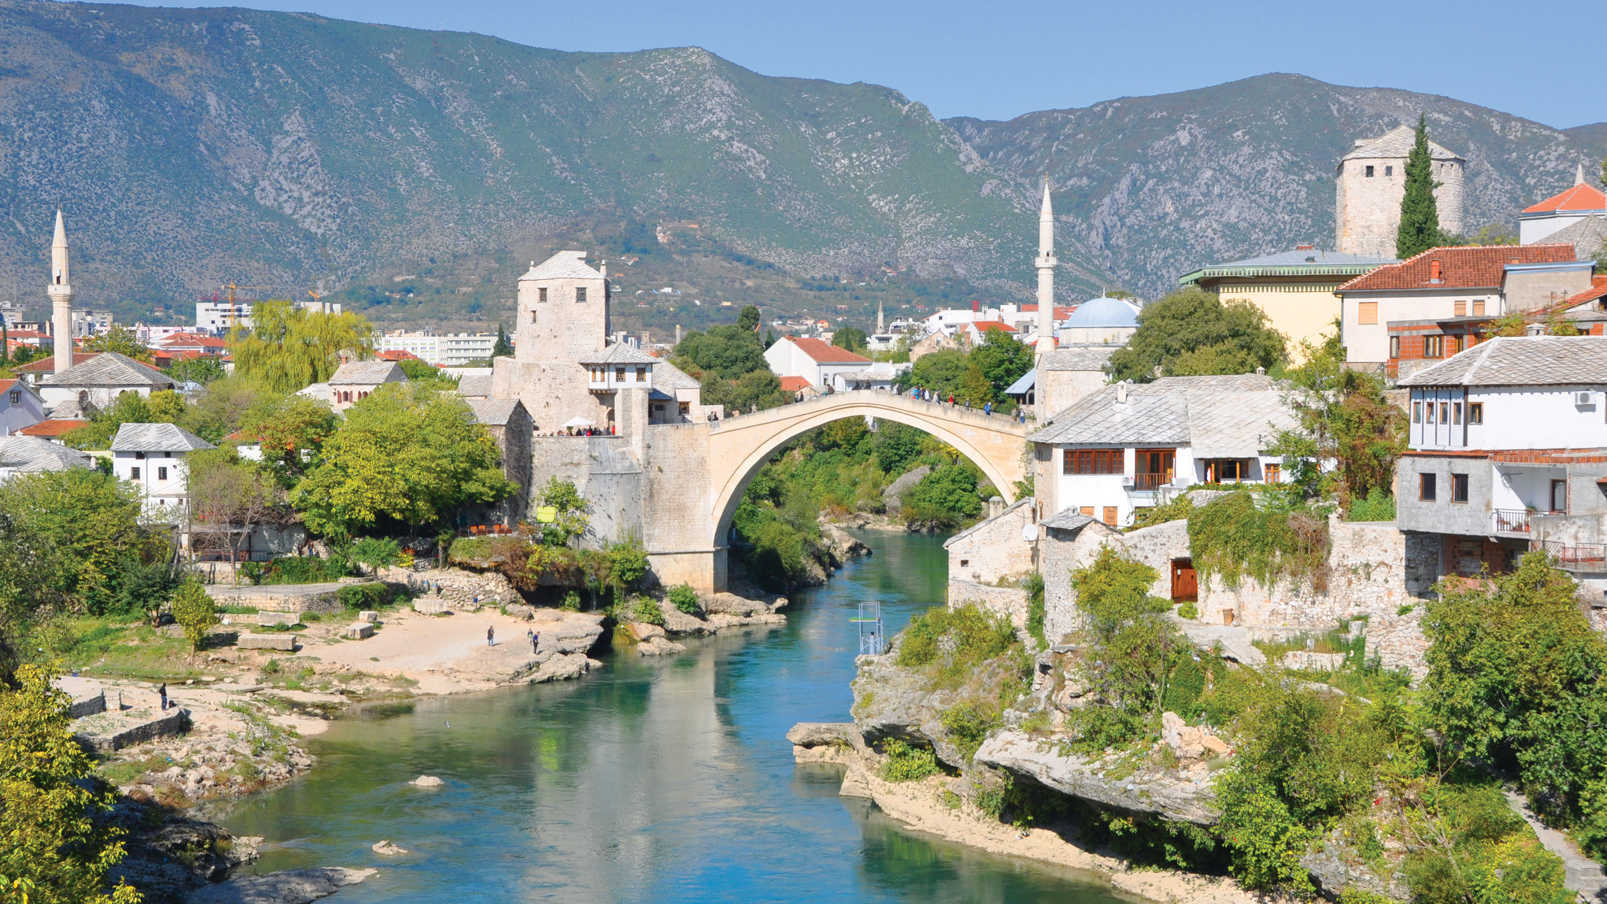 The rebuilt bridge in Mostar, Bosnia-Herzegovina